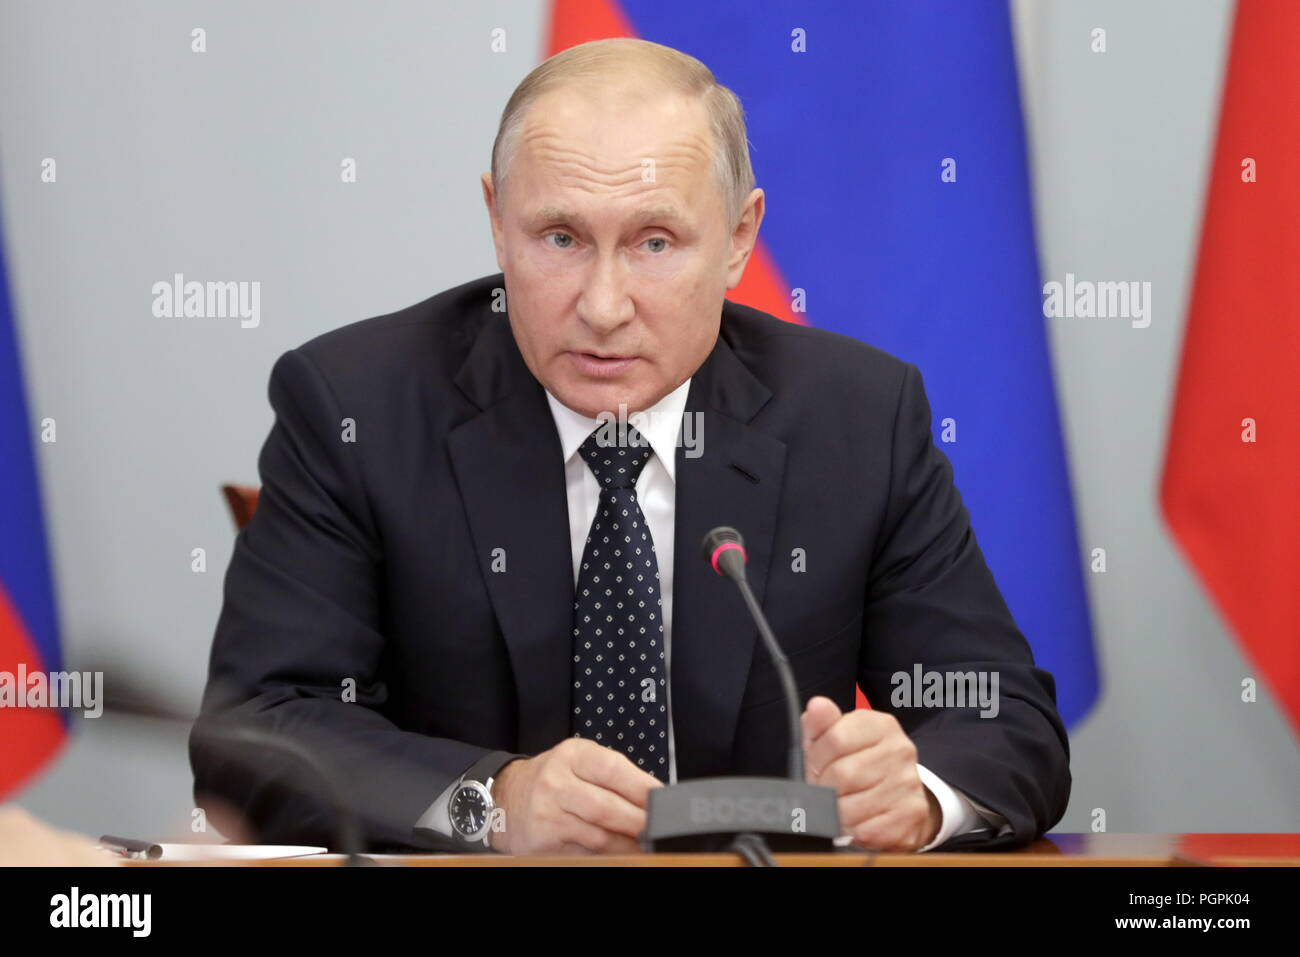 Omsk, Russia. 28th Aug, 2018. RUSSIA - AUGUST 28, 2018: Russia's President Vladimir Putin chairs a meeting on social and economic issues. Mikhail Metzel/TASS Credit: ITAR-TASS News Agency/Alamy Live News - Stock Image